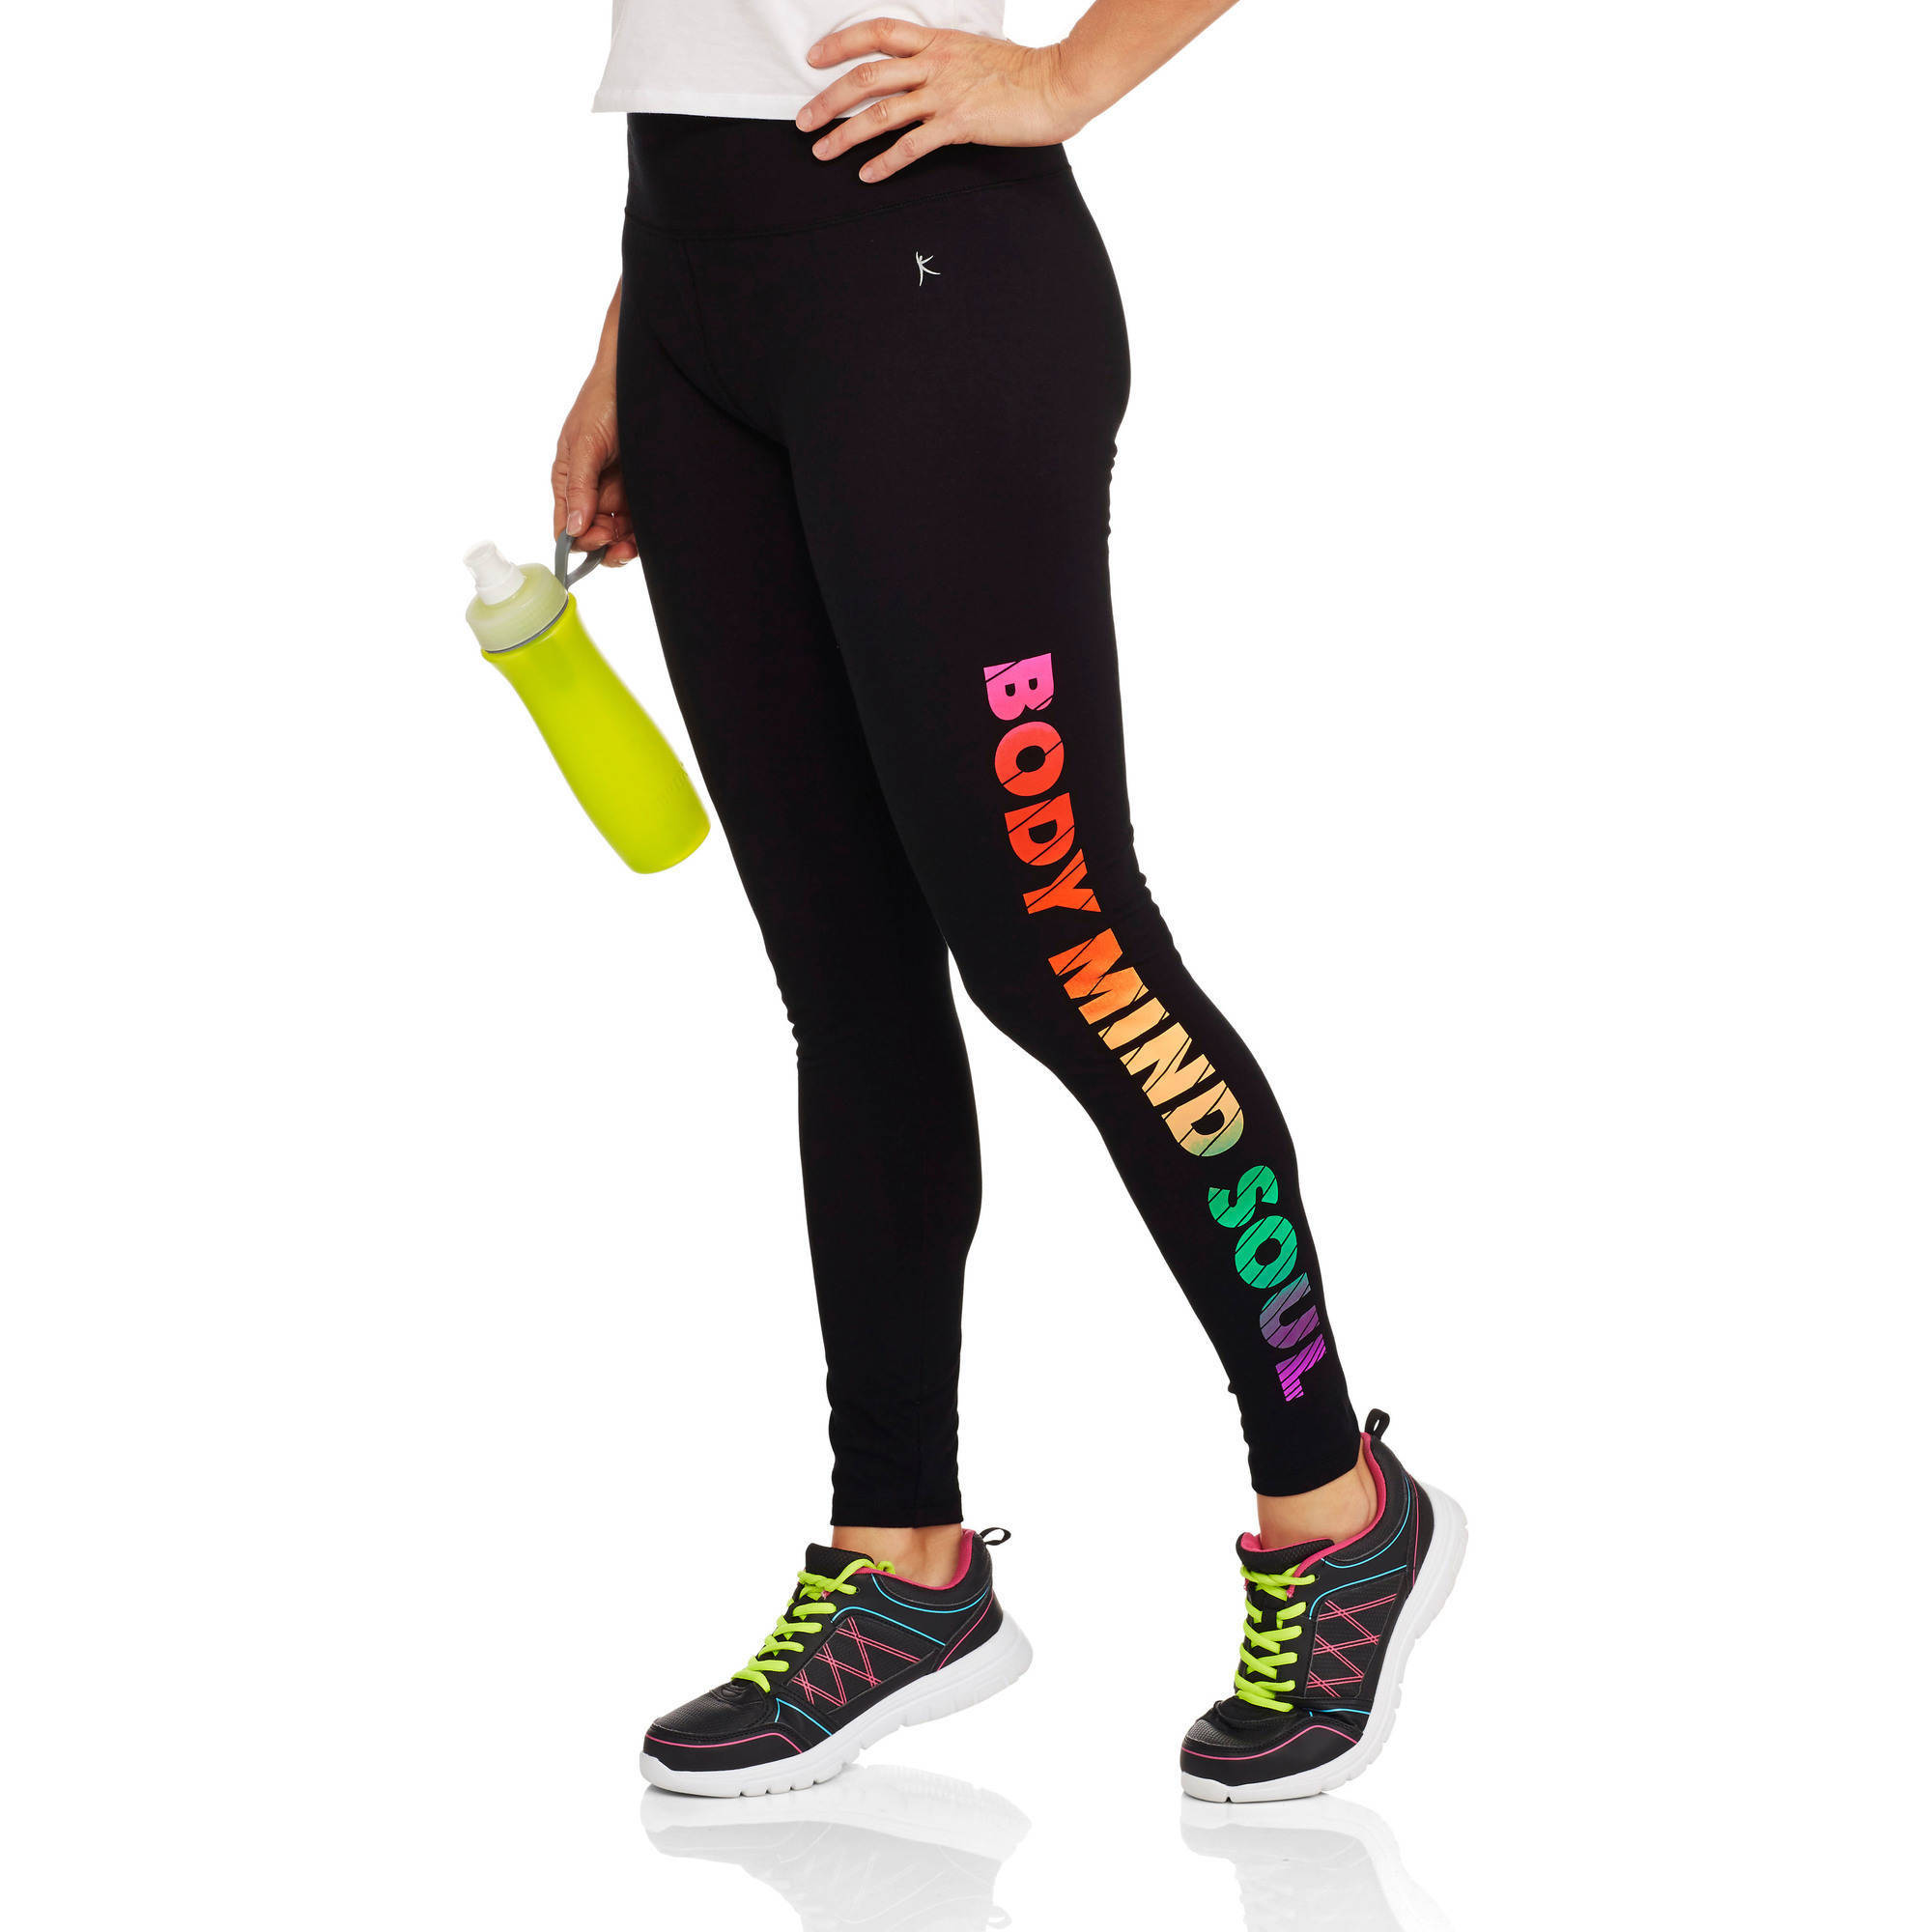 Danskin Now Women's Fitspiration Active Graphic Legging